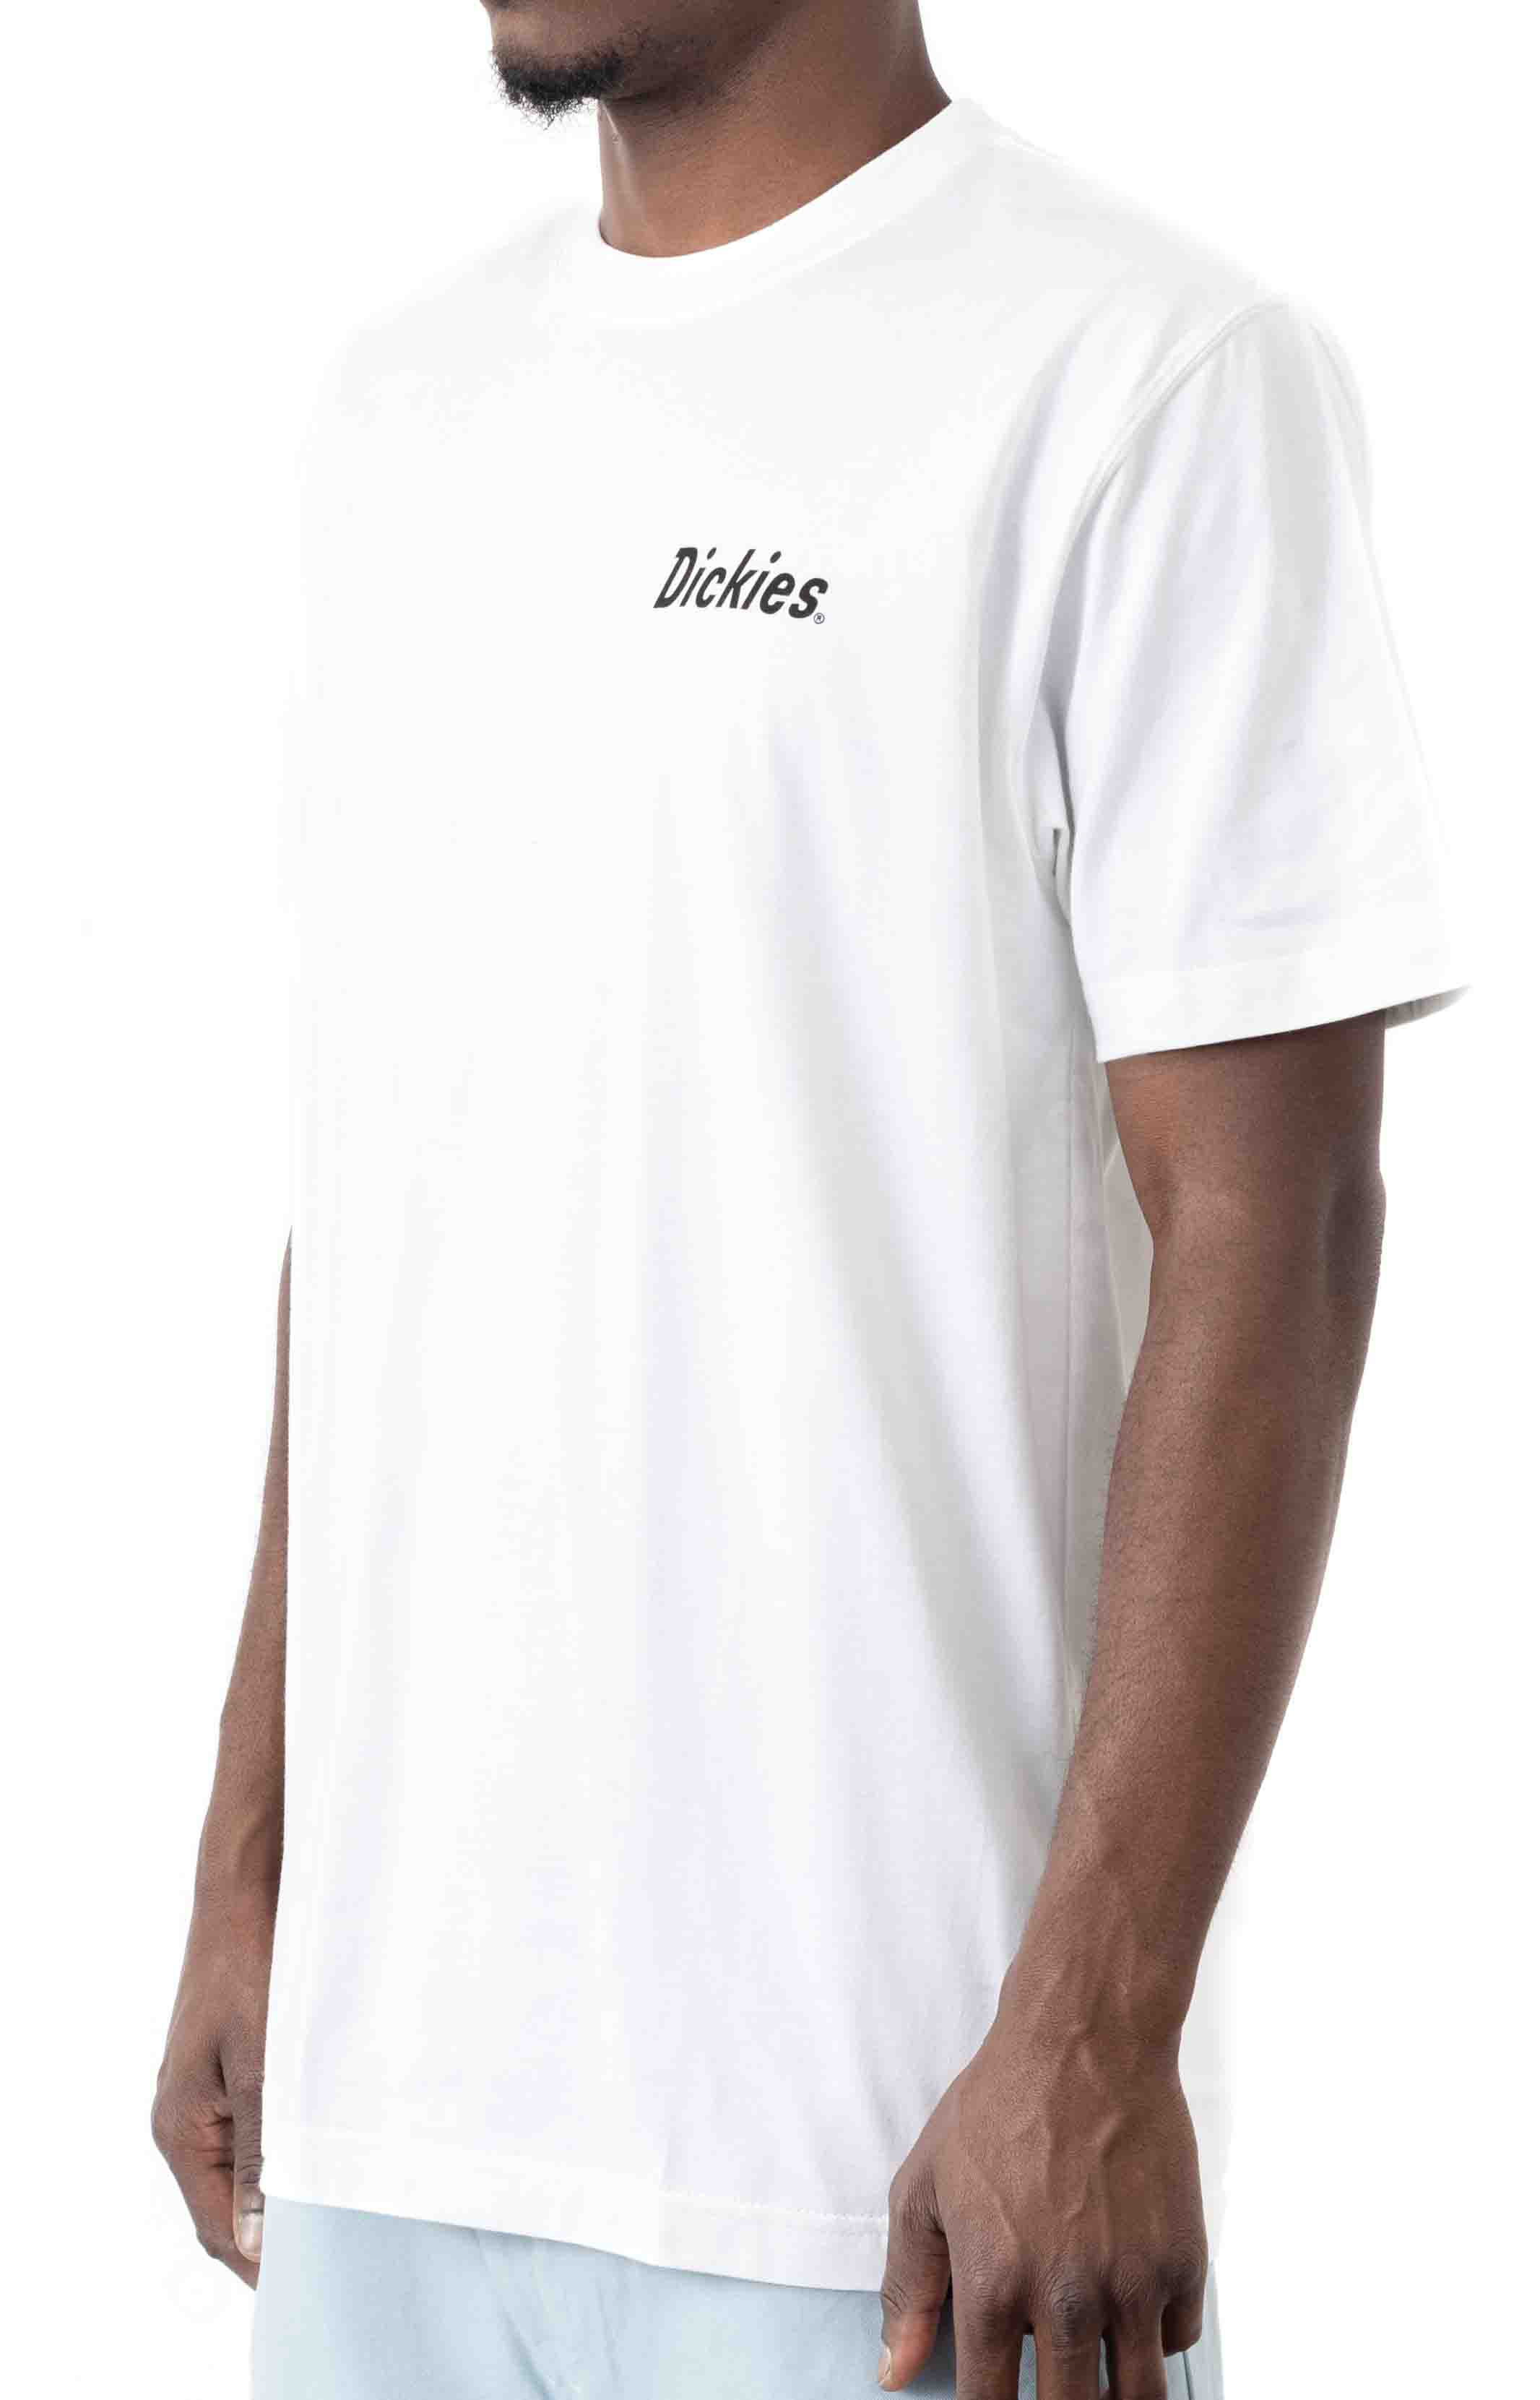 (WS33WH) Short Sleeve Relaxed Fit Graphic T-Shirt - White  2